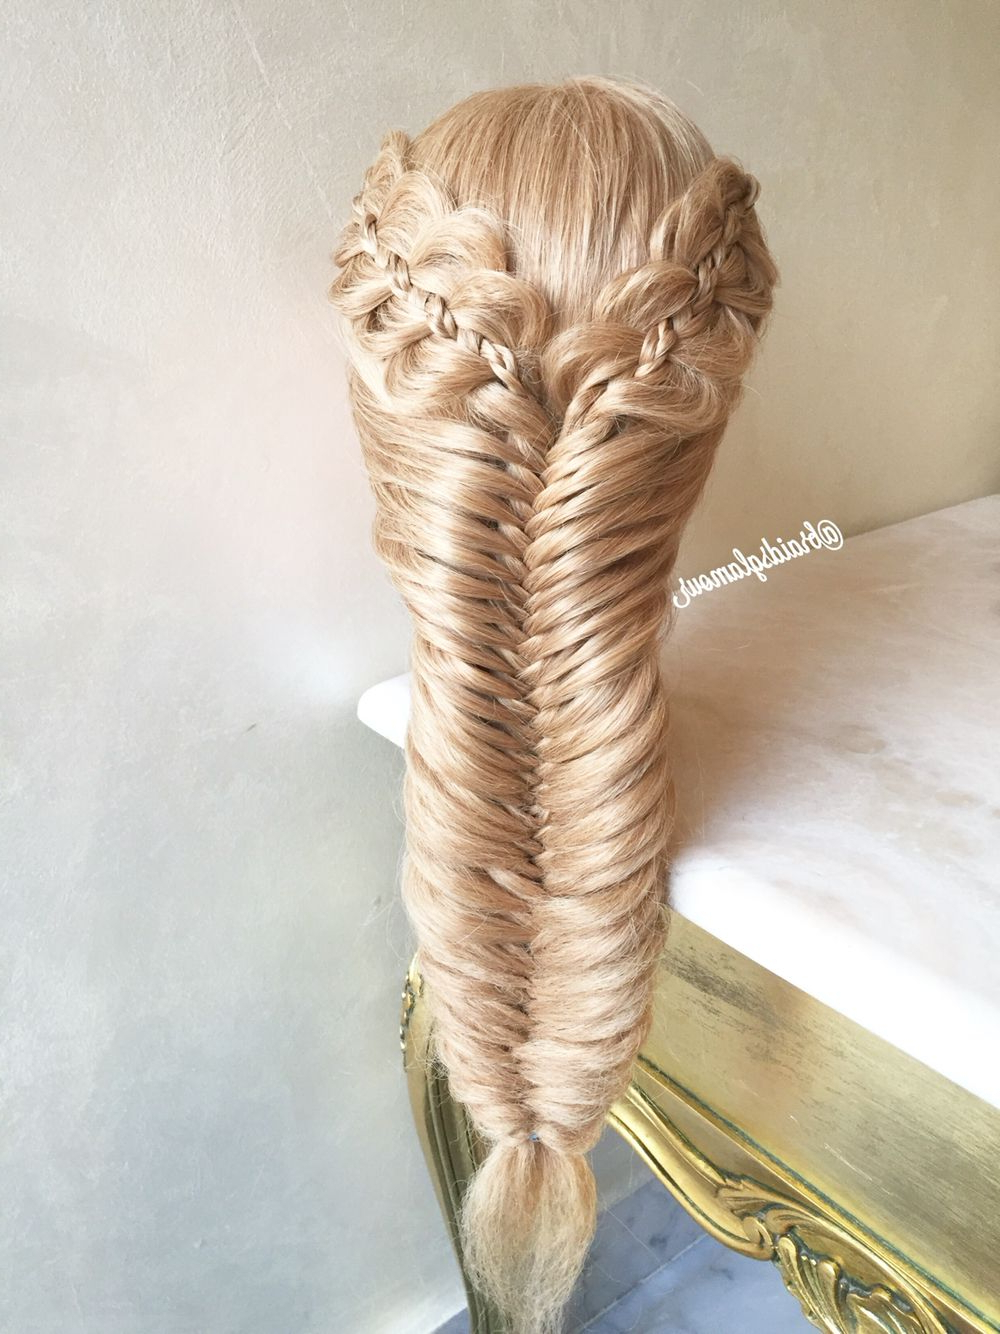 Pin On My Braids With Favorite Rope And Fishtail Braid Hairstyles (View 14 of 20)